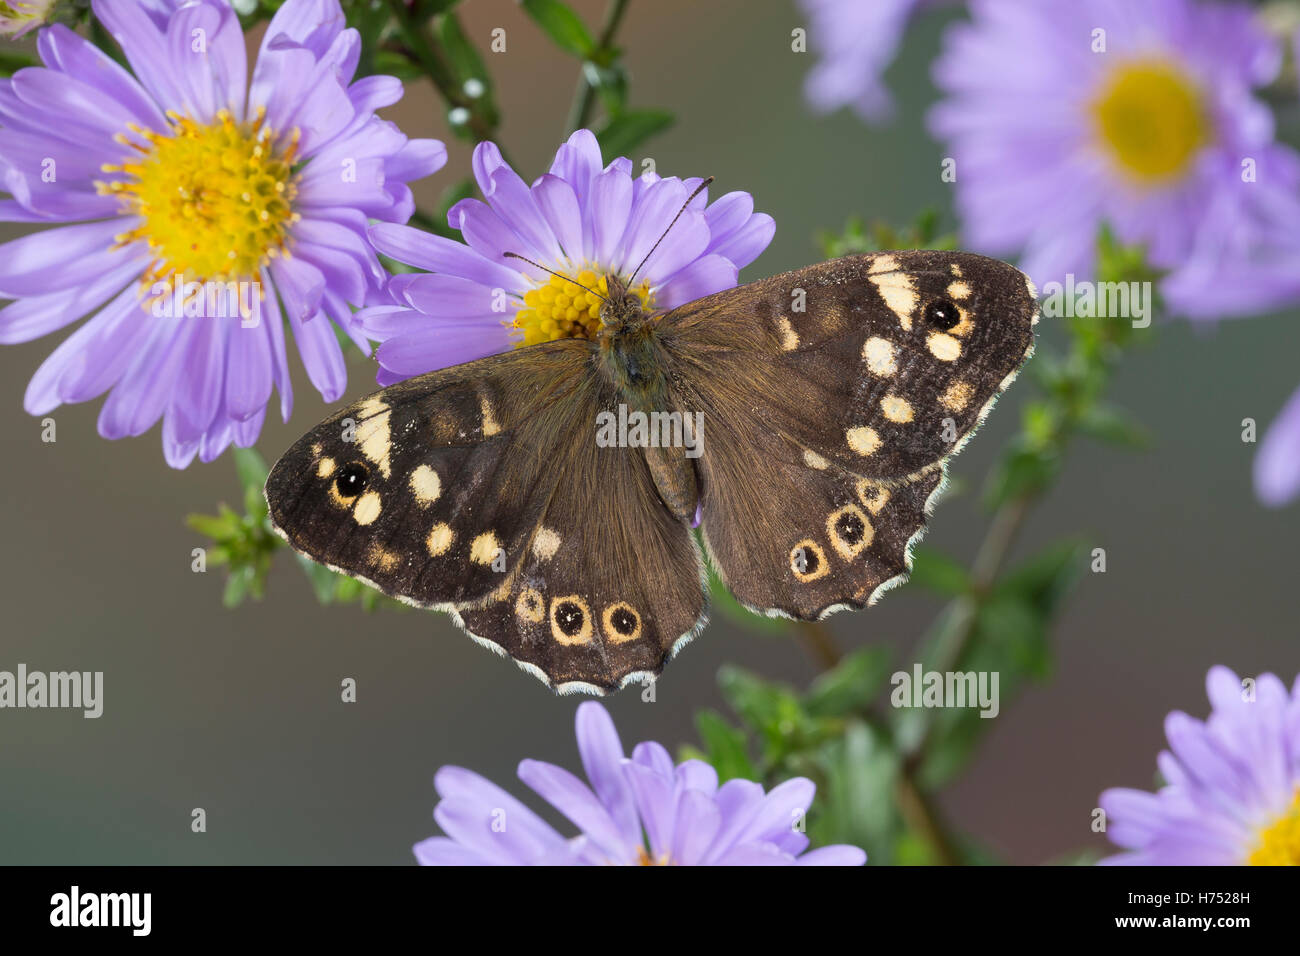 Wald-Brettspiel, Waldbrettspiel, Brettspiel, Laubfalter, Pararge aegeria, speckled wood, Le Tircis - Stock Image